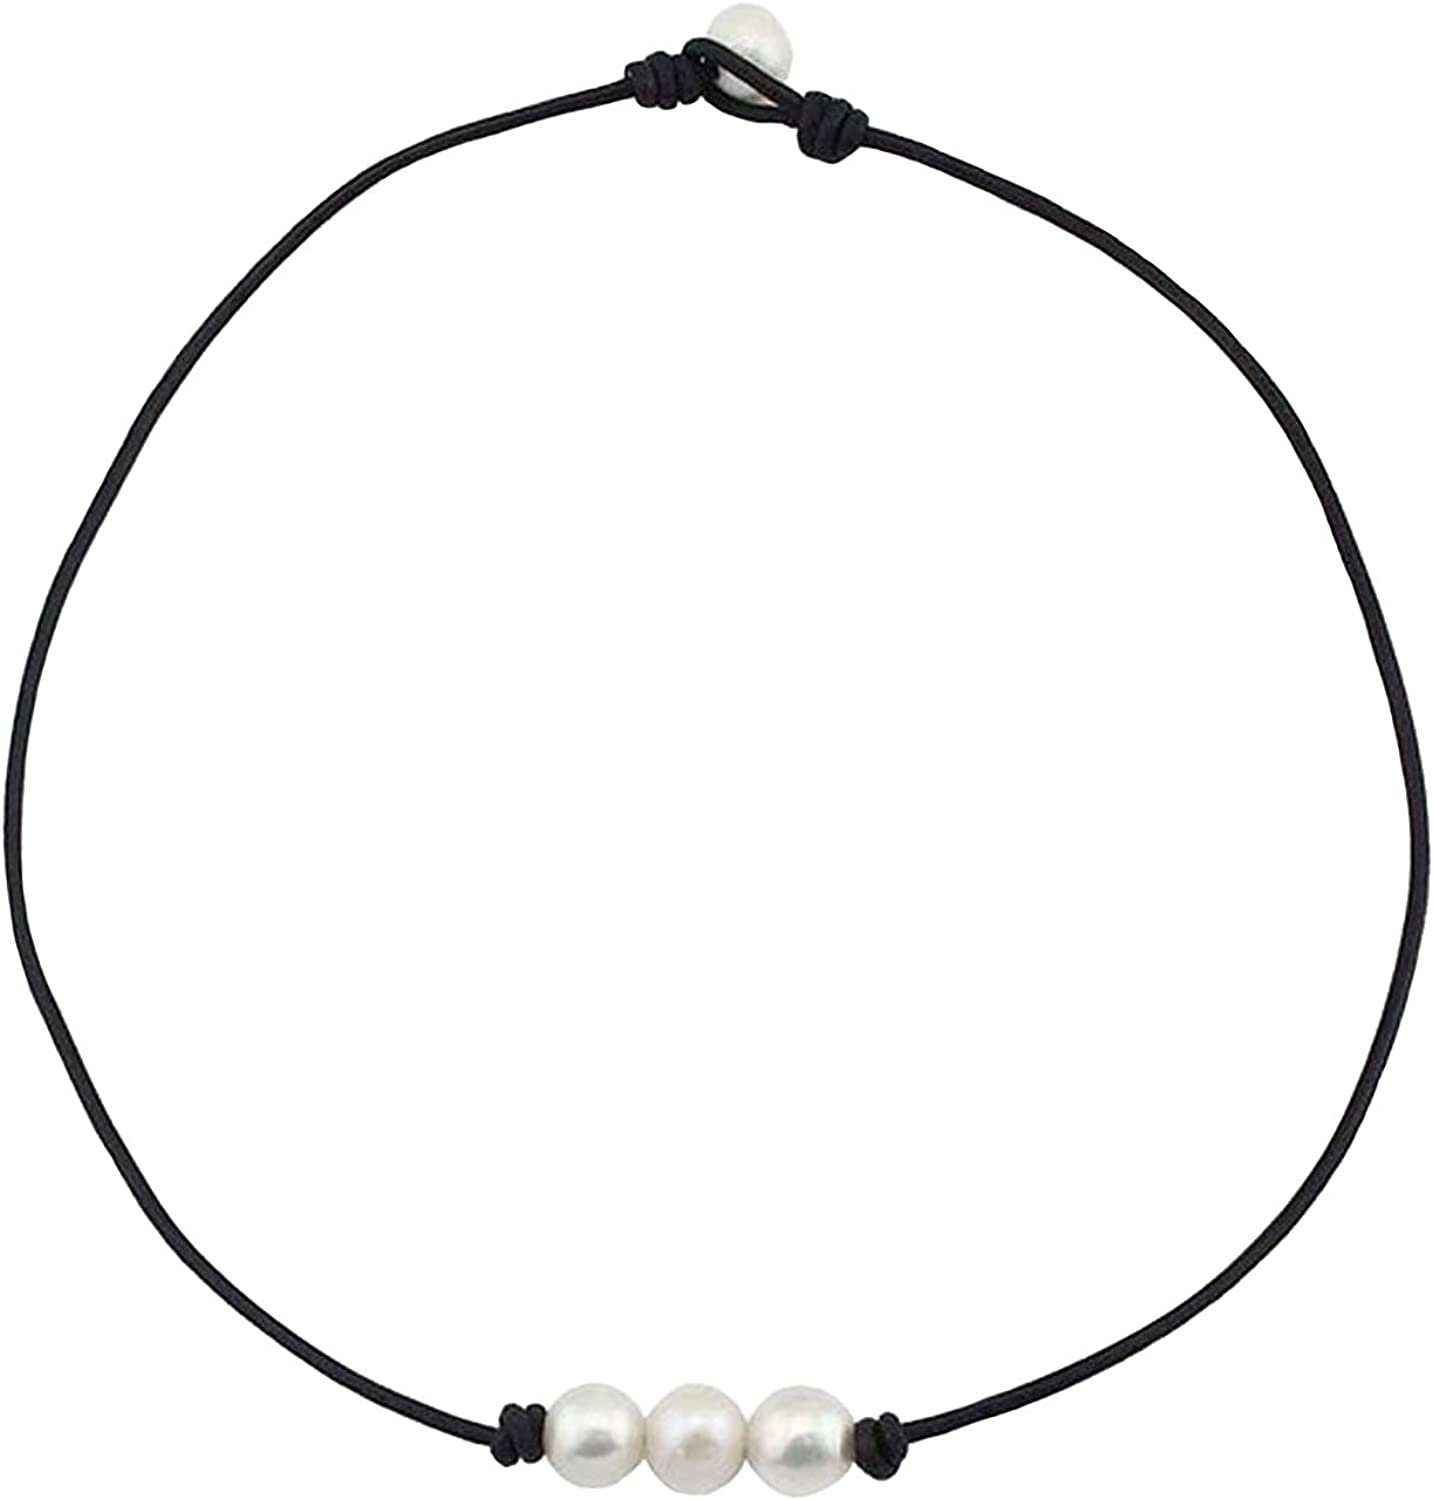 hammered beads necklace womens minimal horn pendant leather ethnic beaded choker Double strands short leather cord necklace gift idea